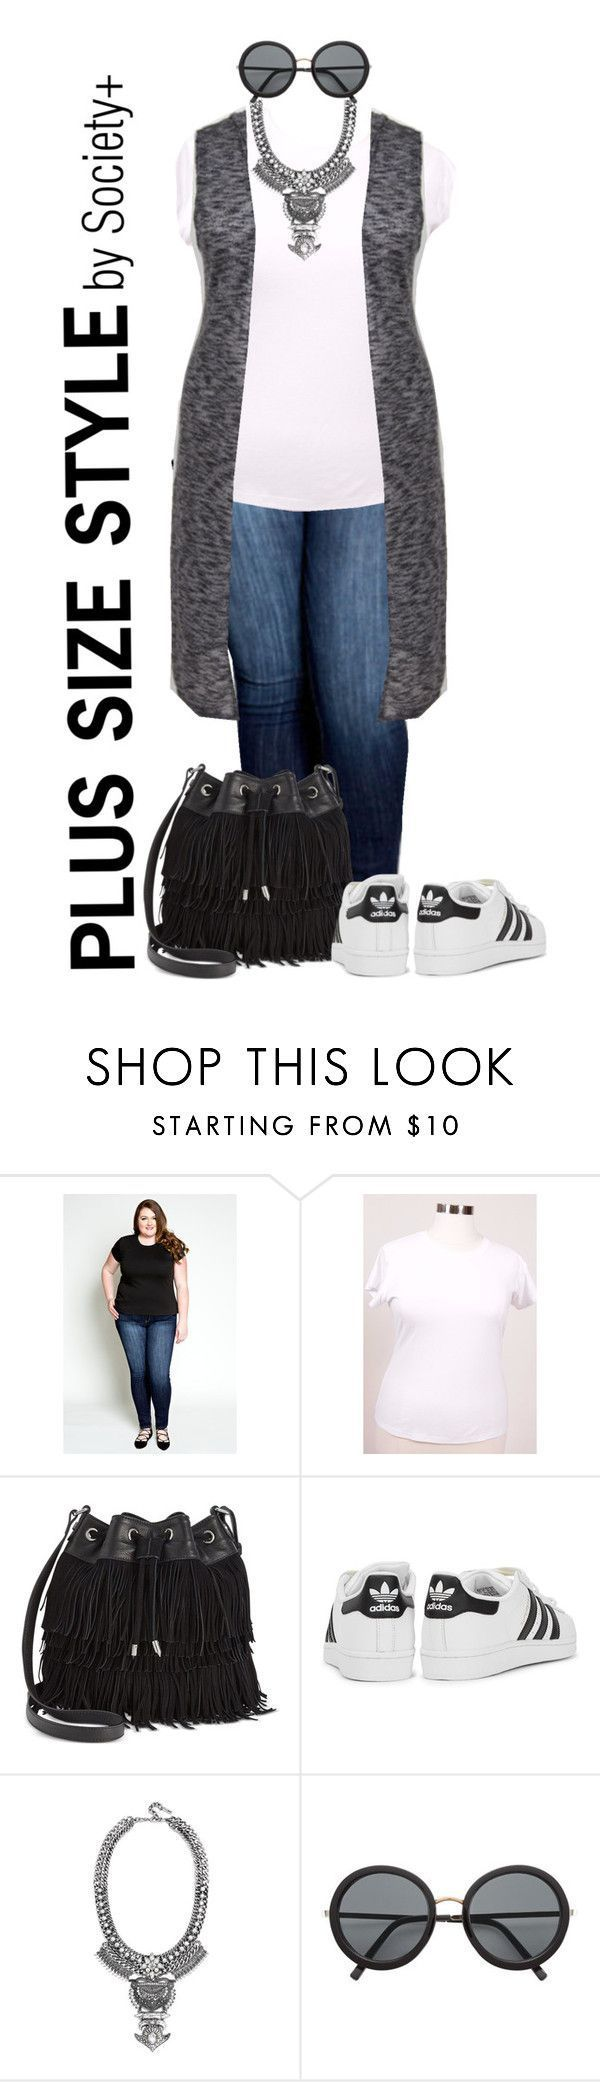 """""""Plus Size Hooded Maxi Vest - Society+"""" by iamsocietyplus on Polyvore plussize, plussizefashion, societyplus and iamsocietyplus"""